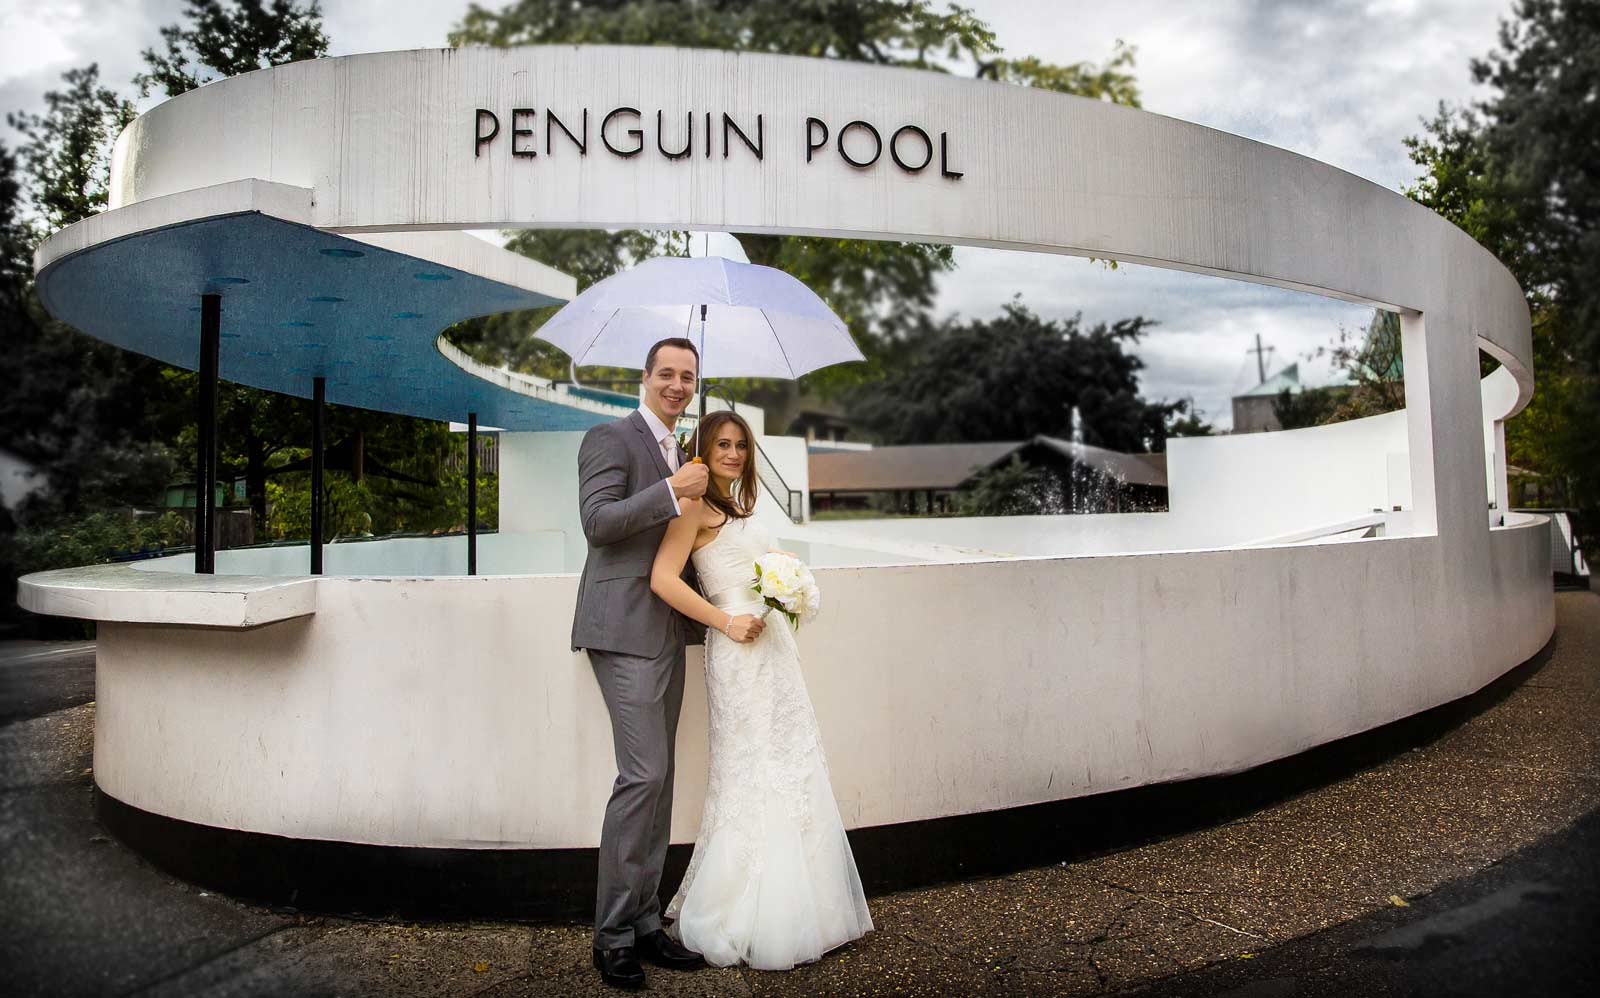 London Zoo wedding at the penguin pool